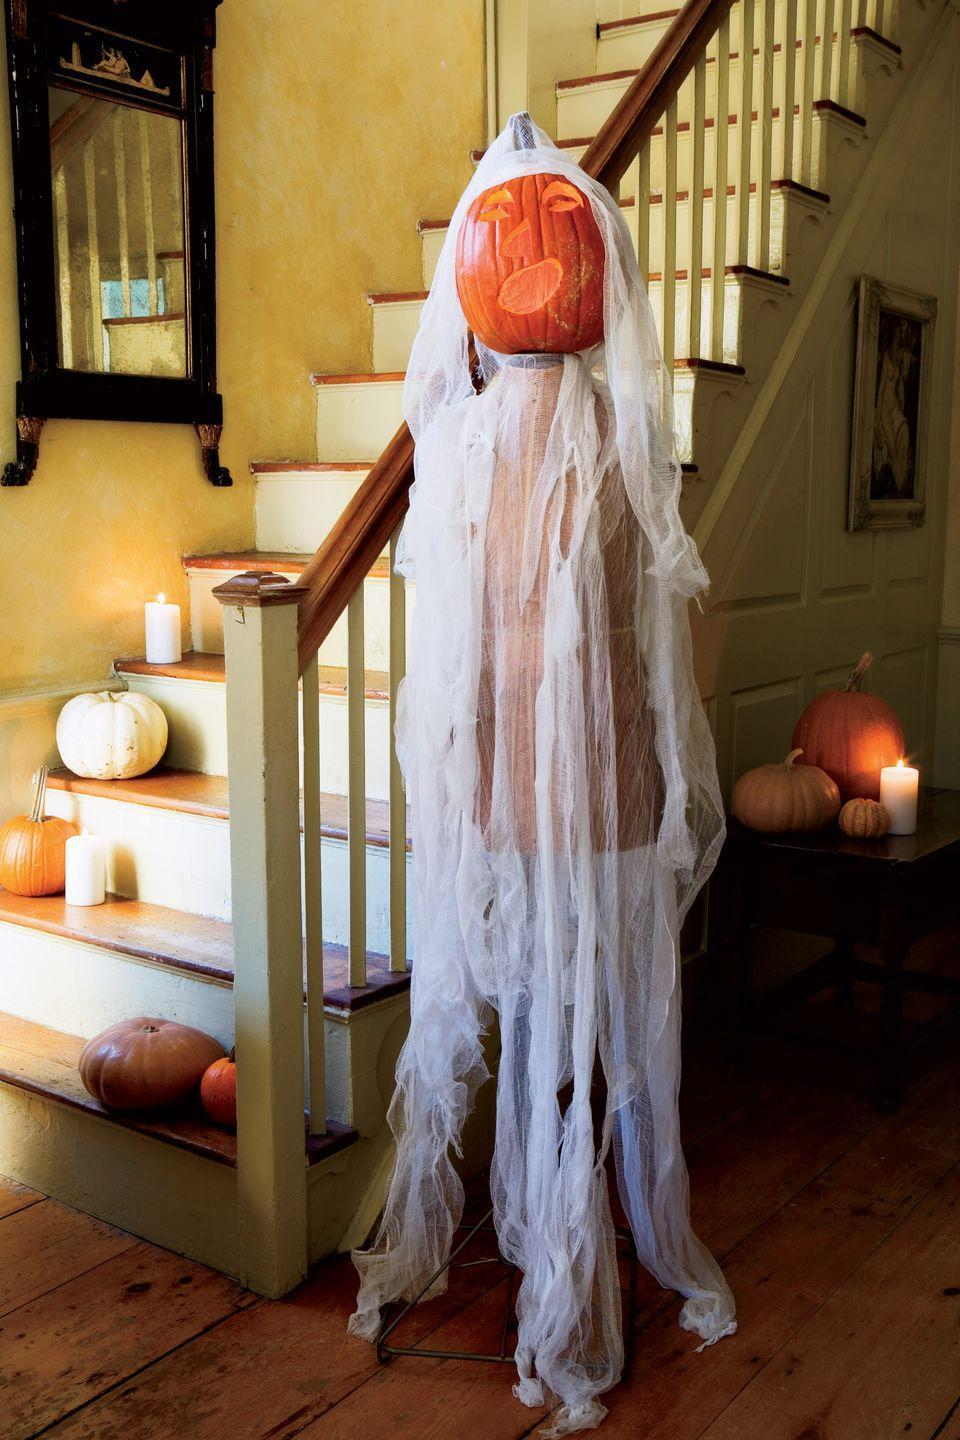 """<p>Give """"dressed to kill"""" a whole new meaning with a pumpkin-headed specter. Carve a grimacing jack-o'-lantern, then carefully attach it to the top of an old dressmaker's dummy. Drape the mannequin with tattered-looking cheesecloth and position it in the foyer to greet party guests. </p>"""